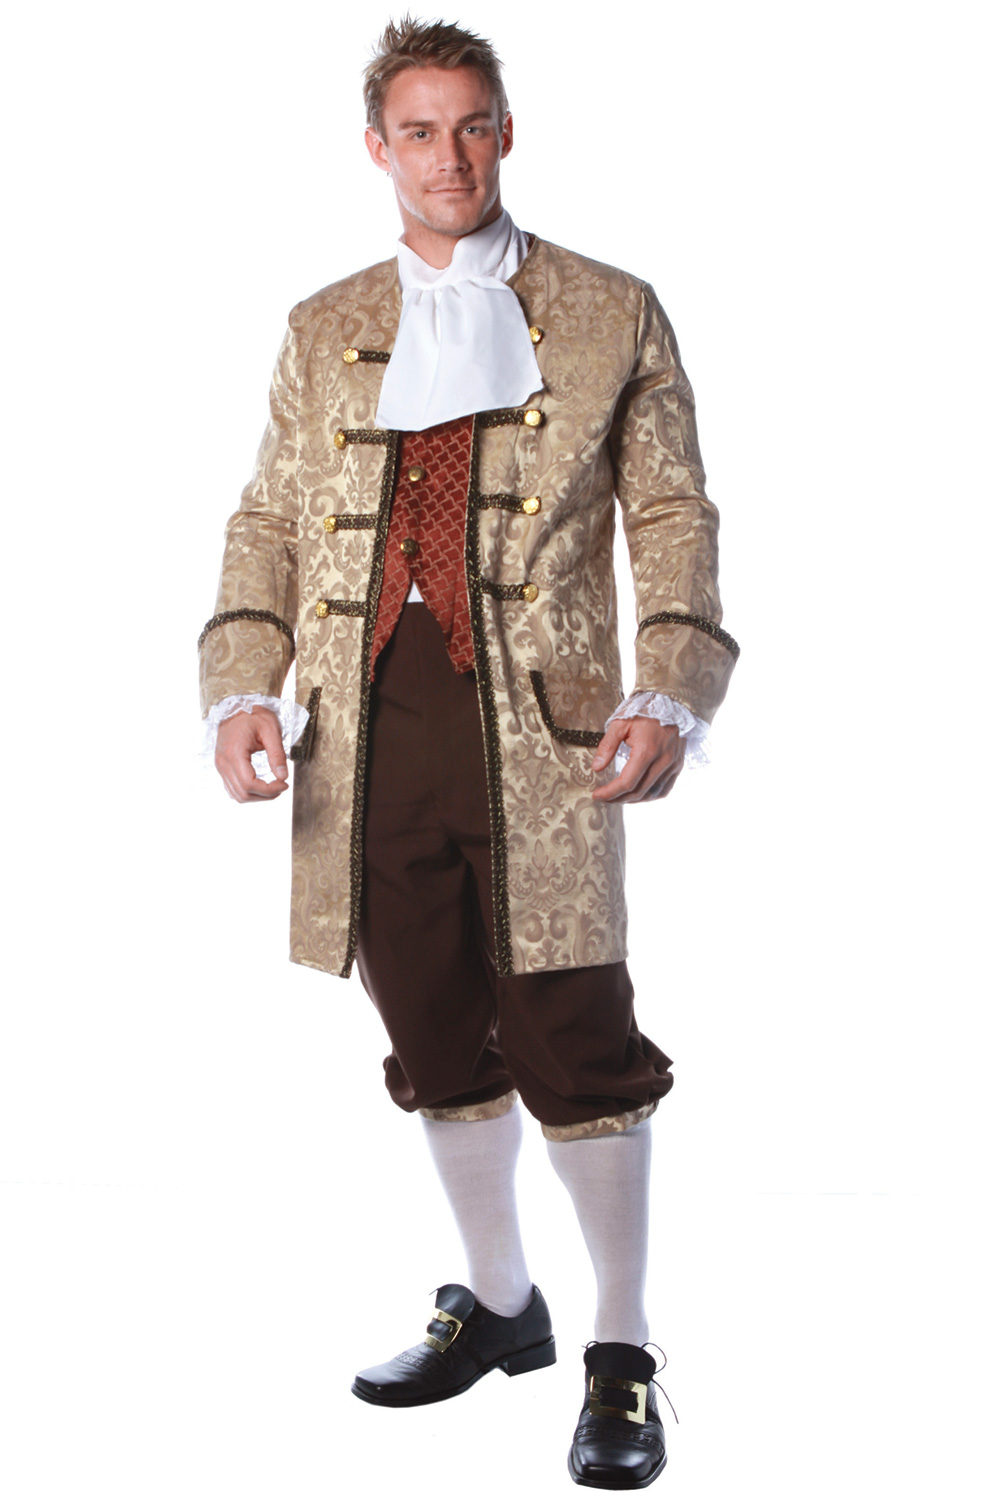 sc 1 st  Pure Costumes & Noble Colonial Man Adult Costume - PureCostumes.com